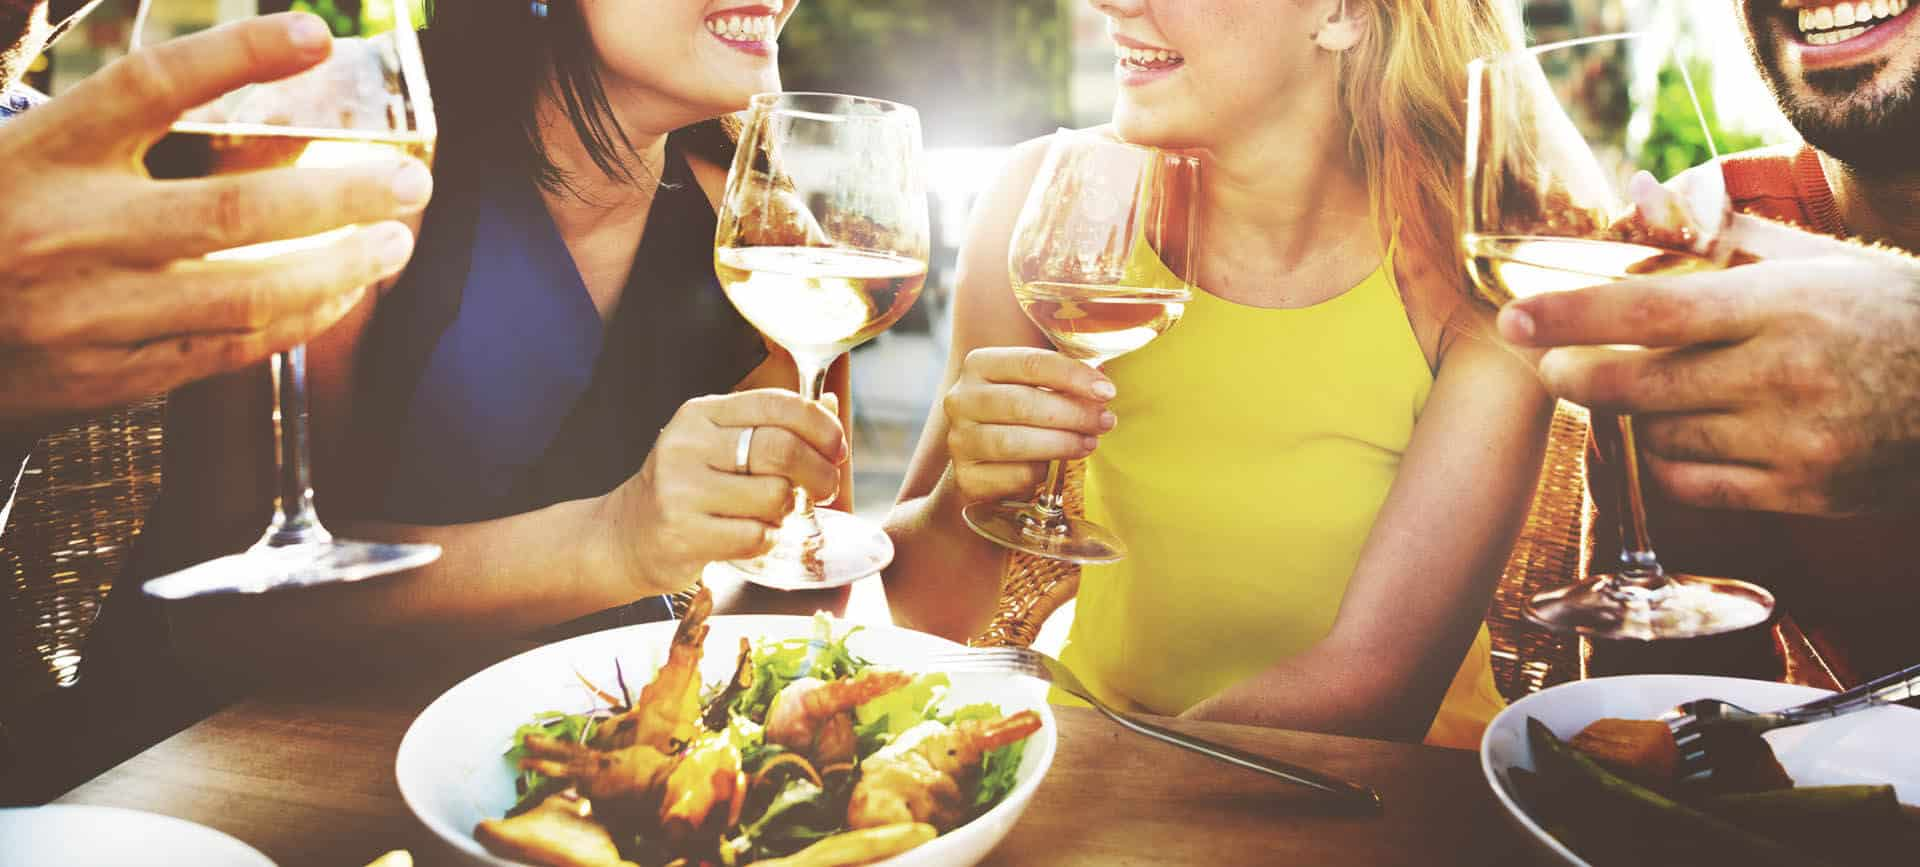 Al fresco dining in Mayfair